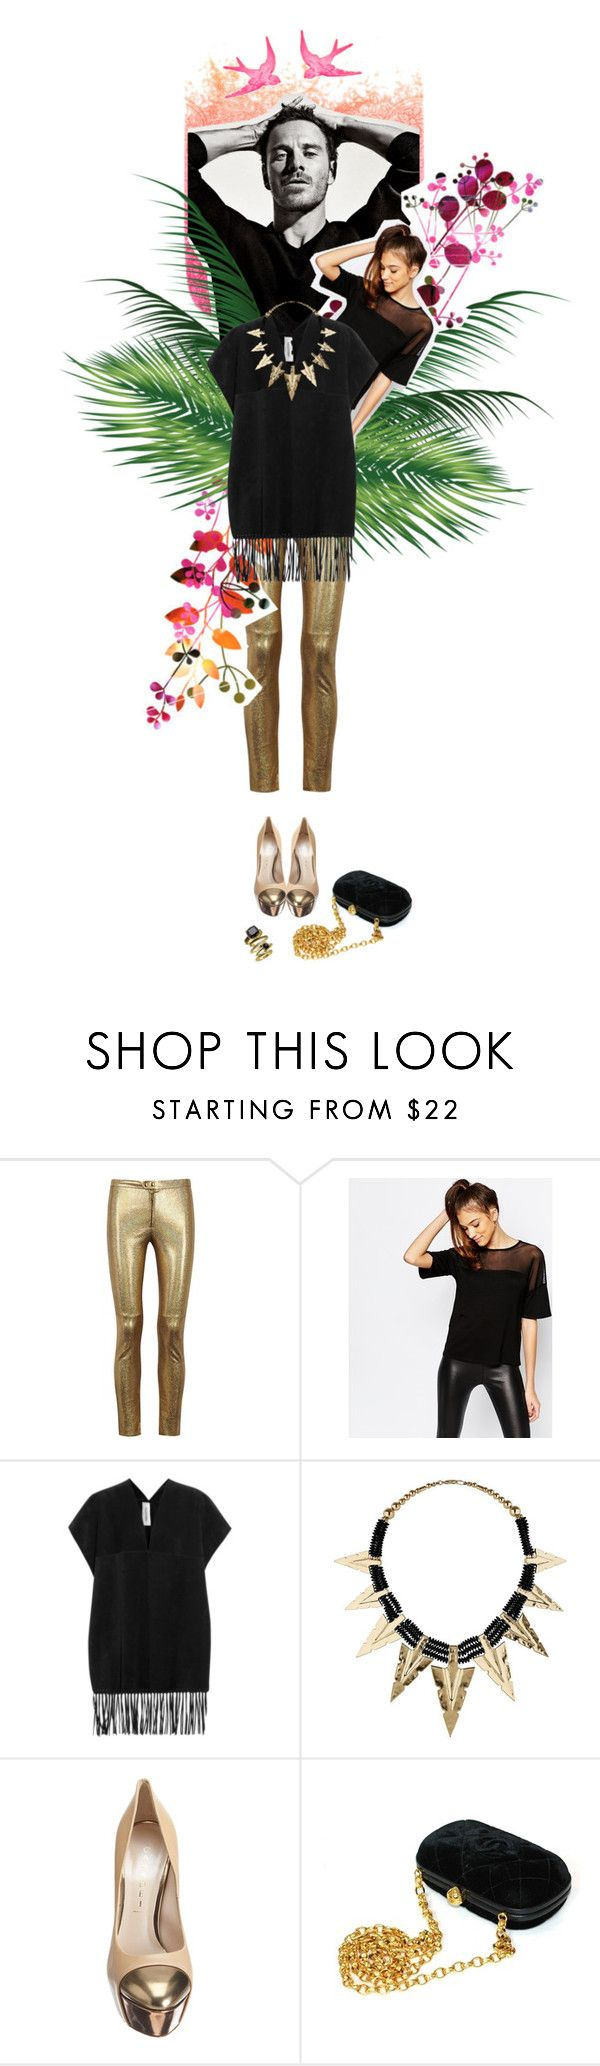 """""""Senza titolo #731"""" by labdesign ❤ liked on Polyvore featuring Isabel Marant, Daisy Street, Valentino, Casadei, Chanel and Ariella Collection"""